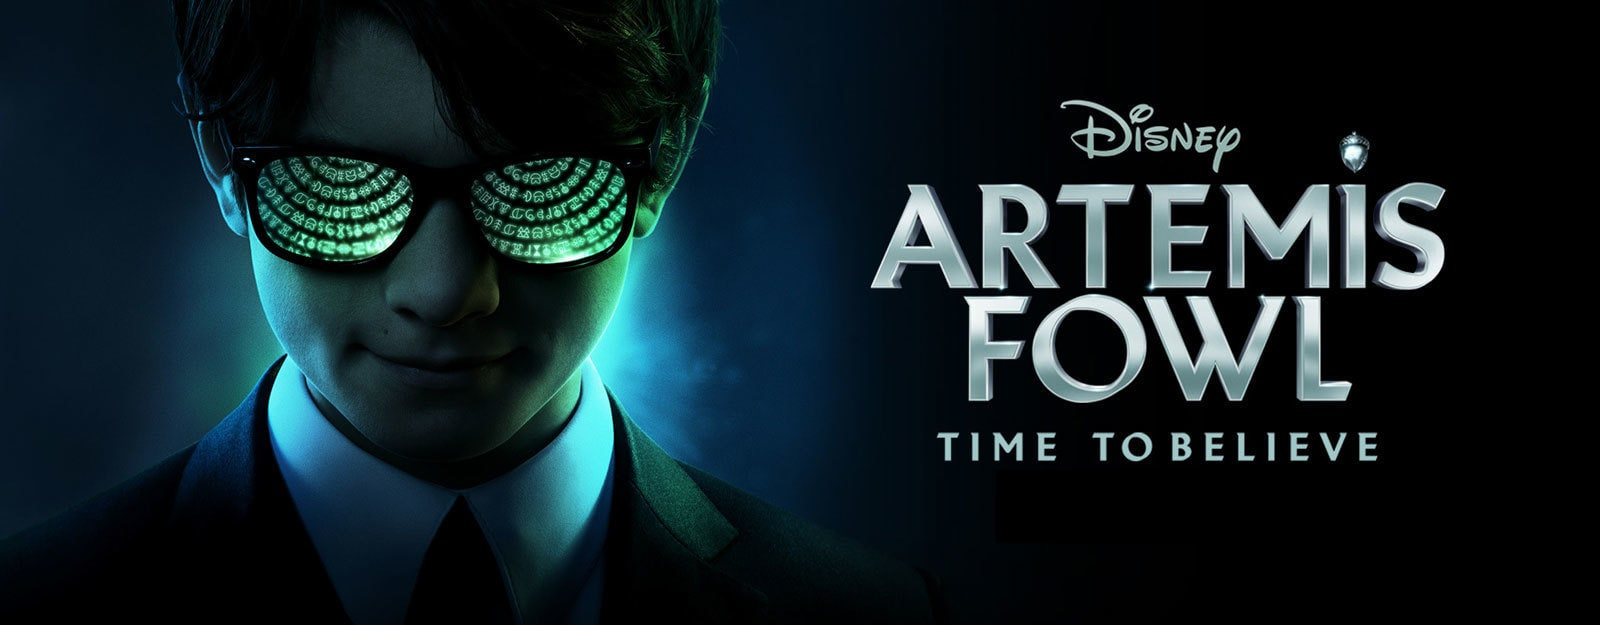 Disney's Artemis Fowl - Banner Hero Object - video